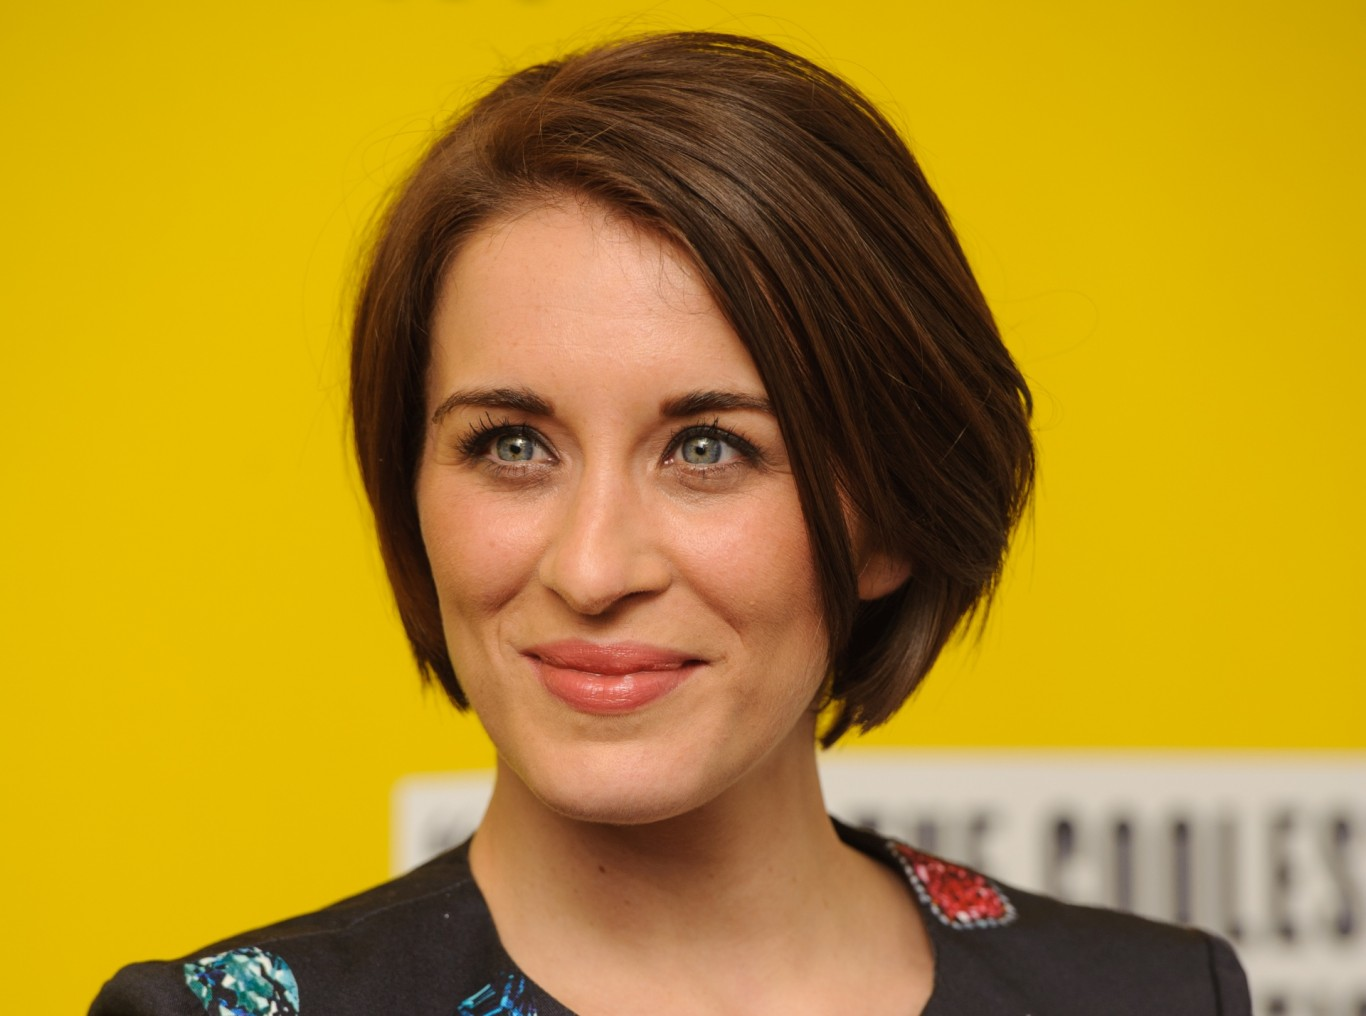 vicky mcclure married